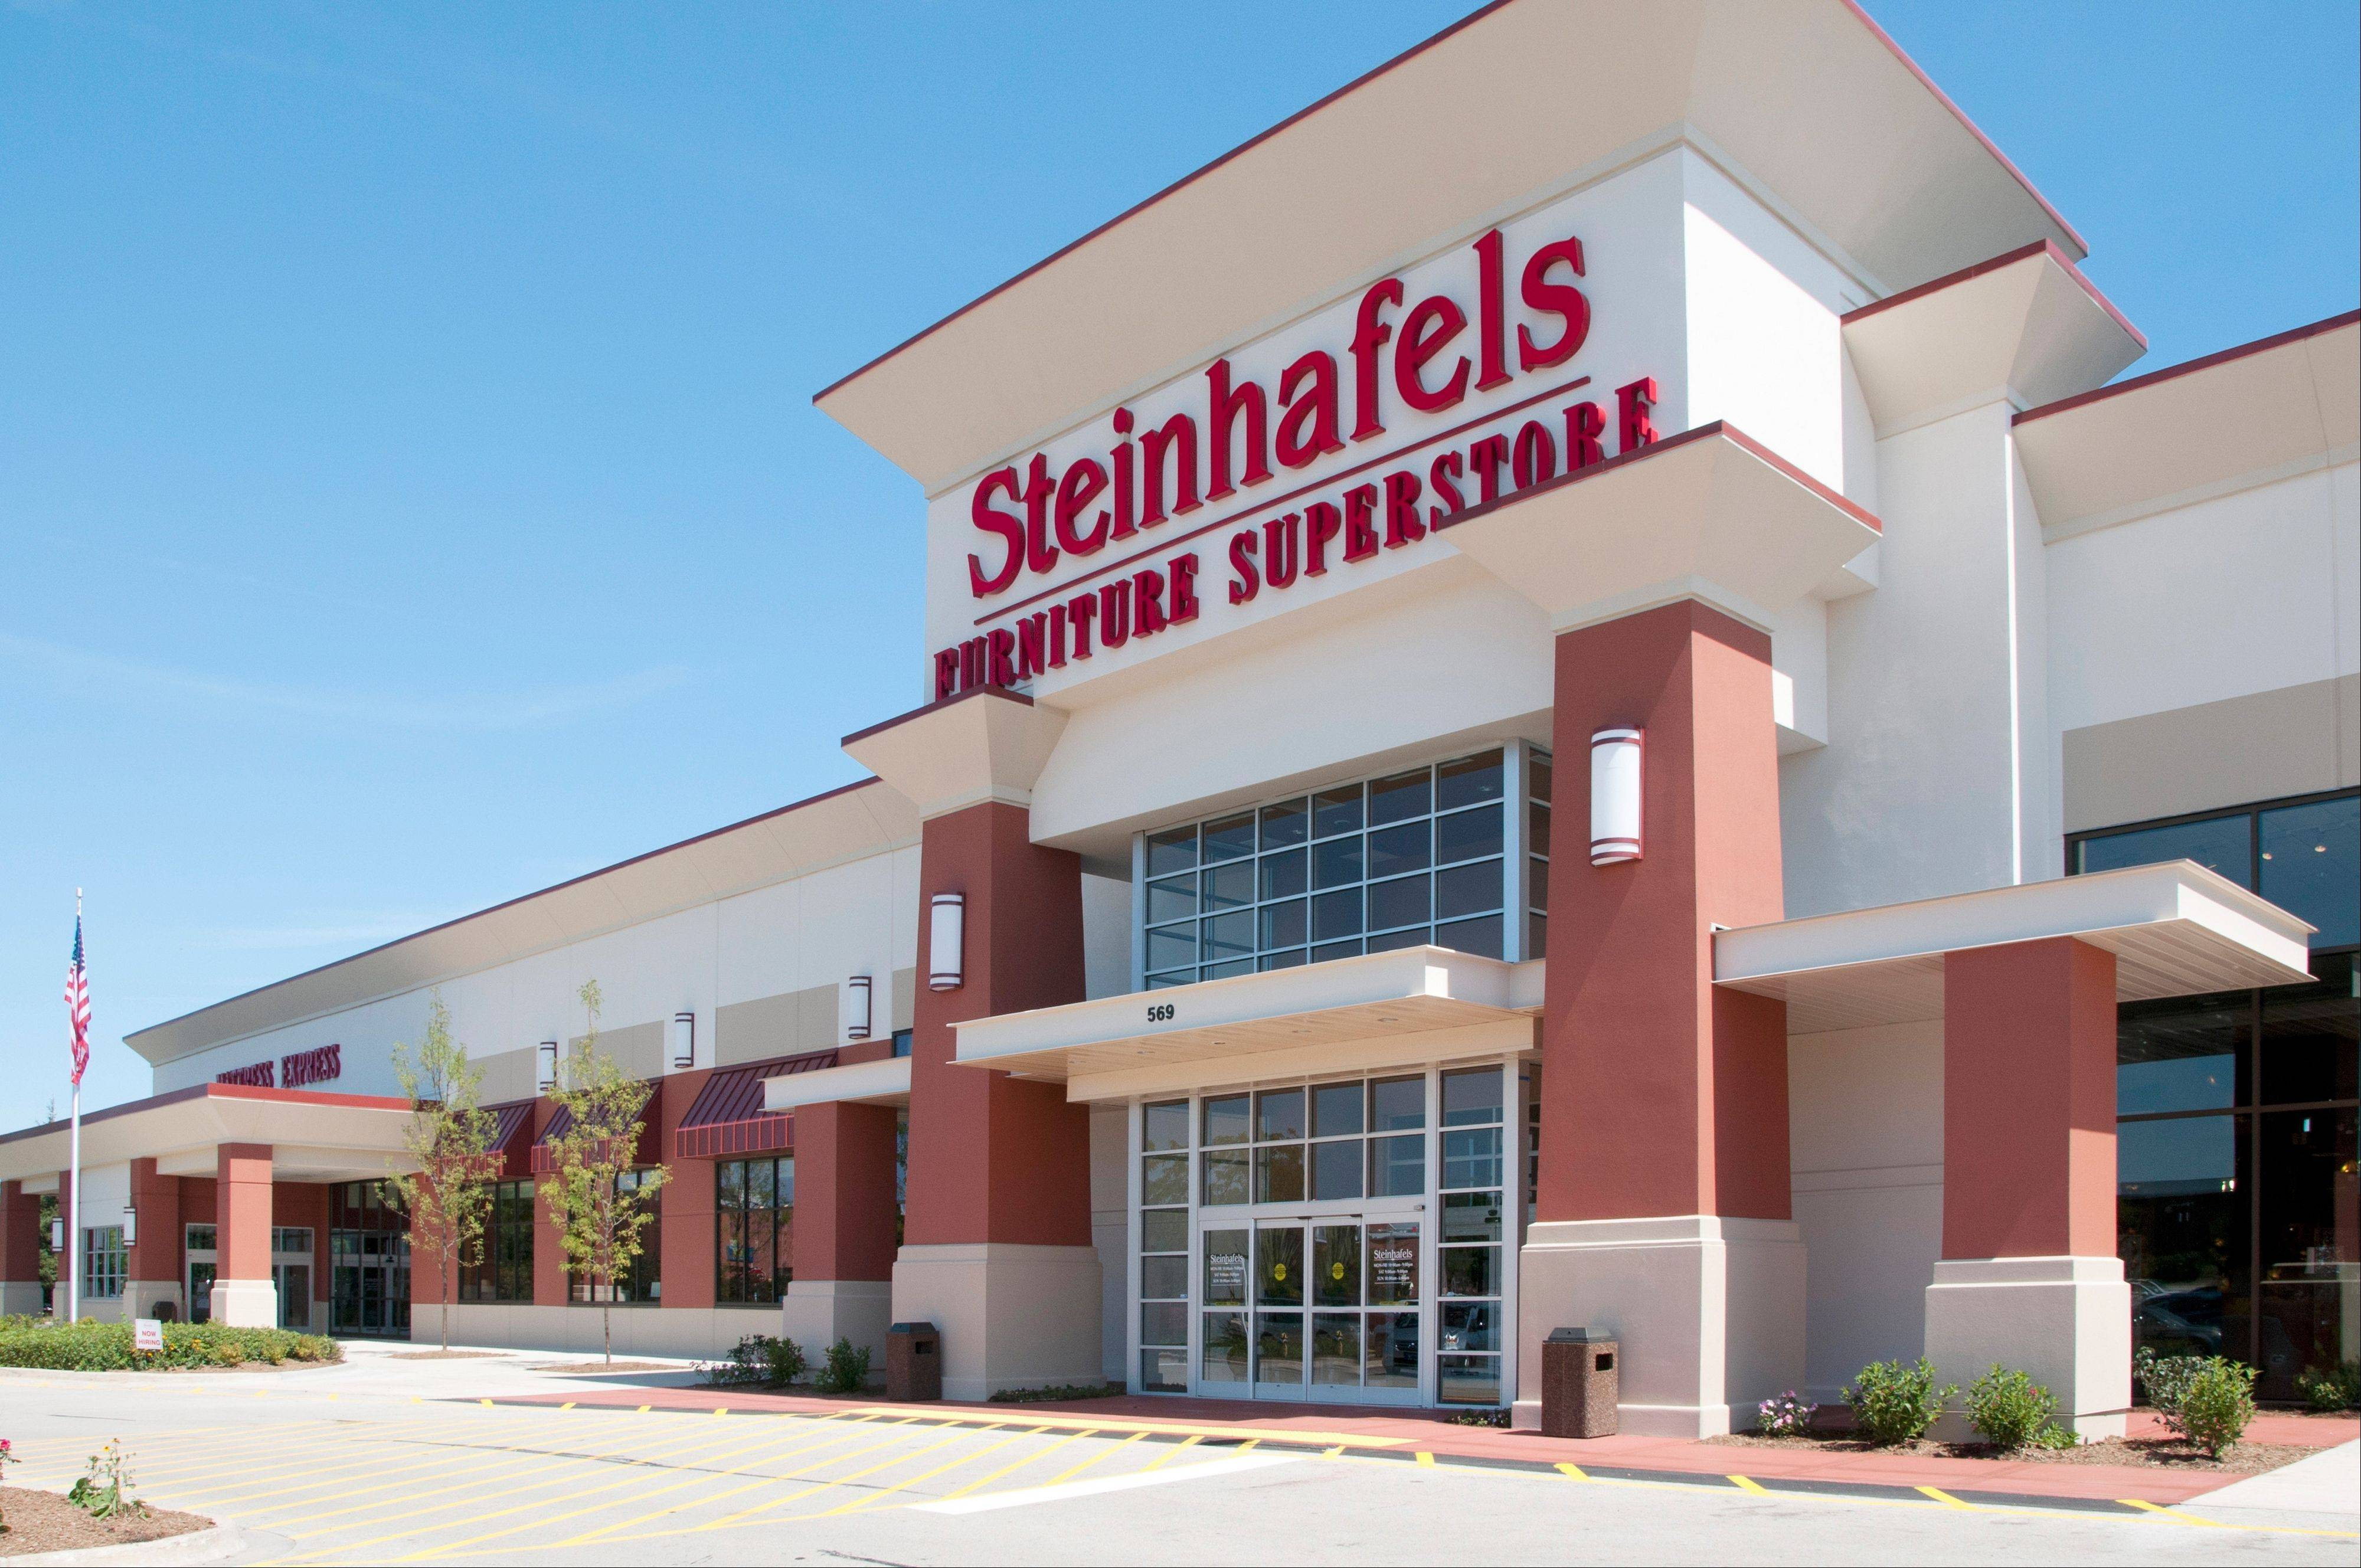 The Steinhafels furniture superstore in Vernon Hills opened in 2011.